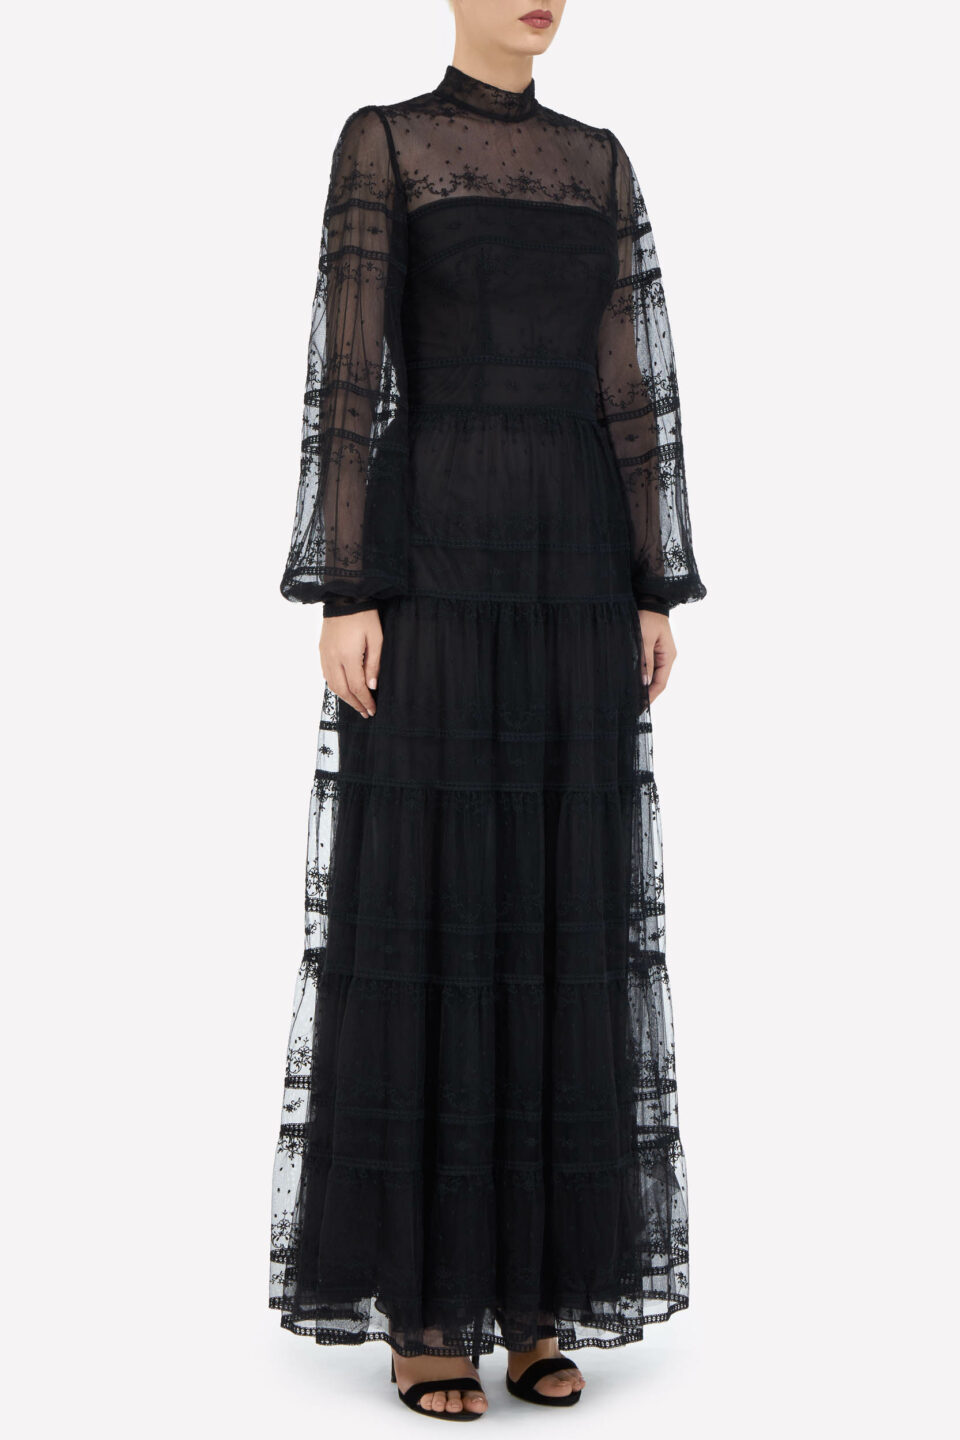 Scarlett FW2161 Black Embroidered French Tulle Mock-Neck Dress with Balloon Sleeves